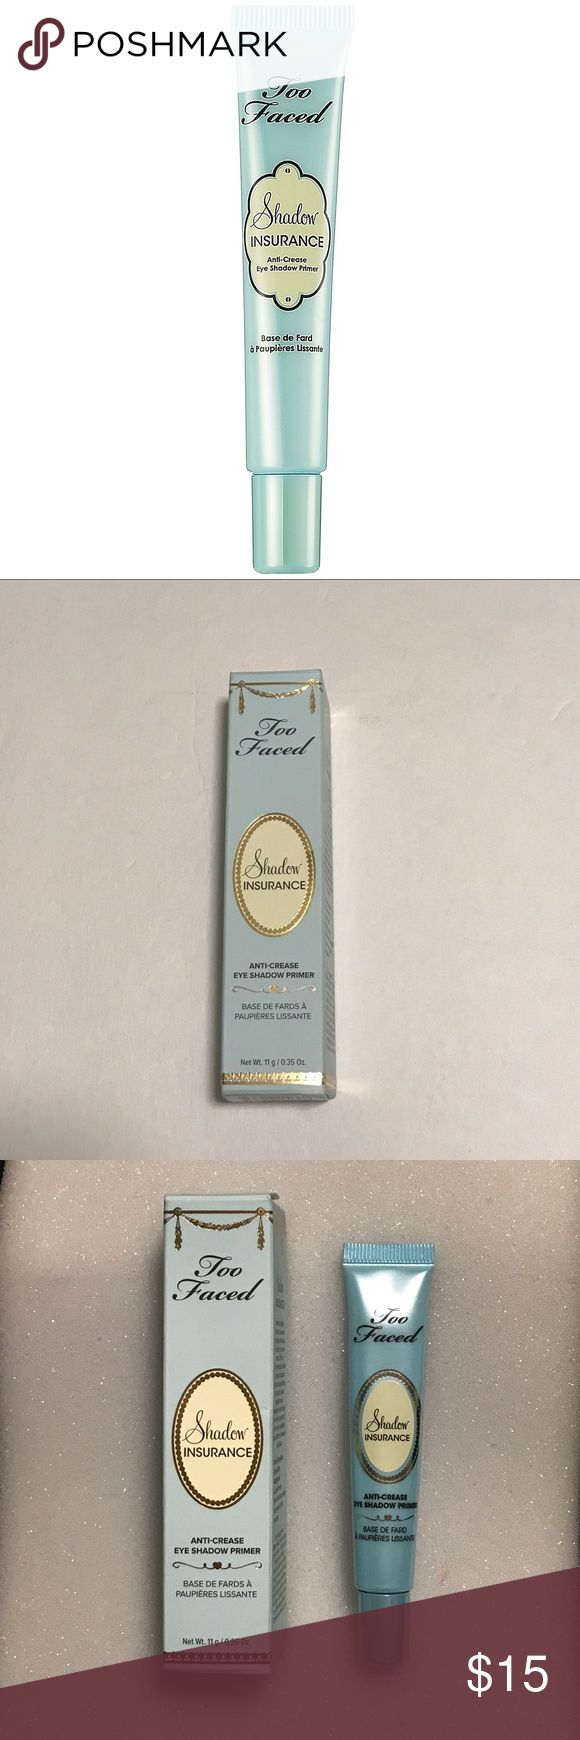 Too Faced Shadow Insurance Brand new! Eyeshadow primer Too Faced Makeup Eye Primer